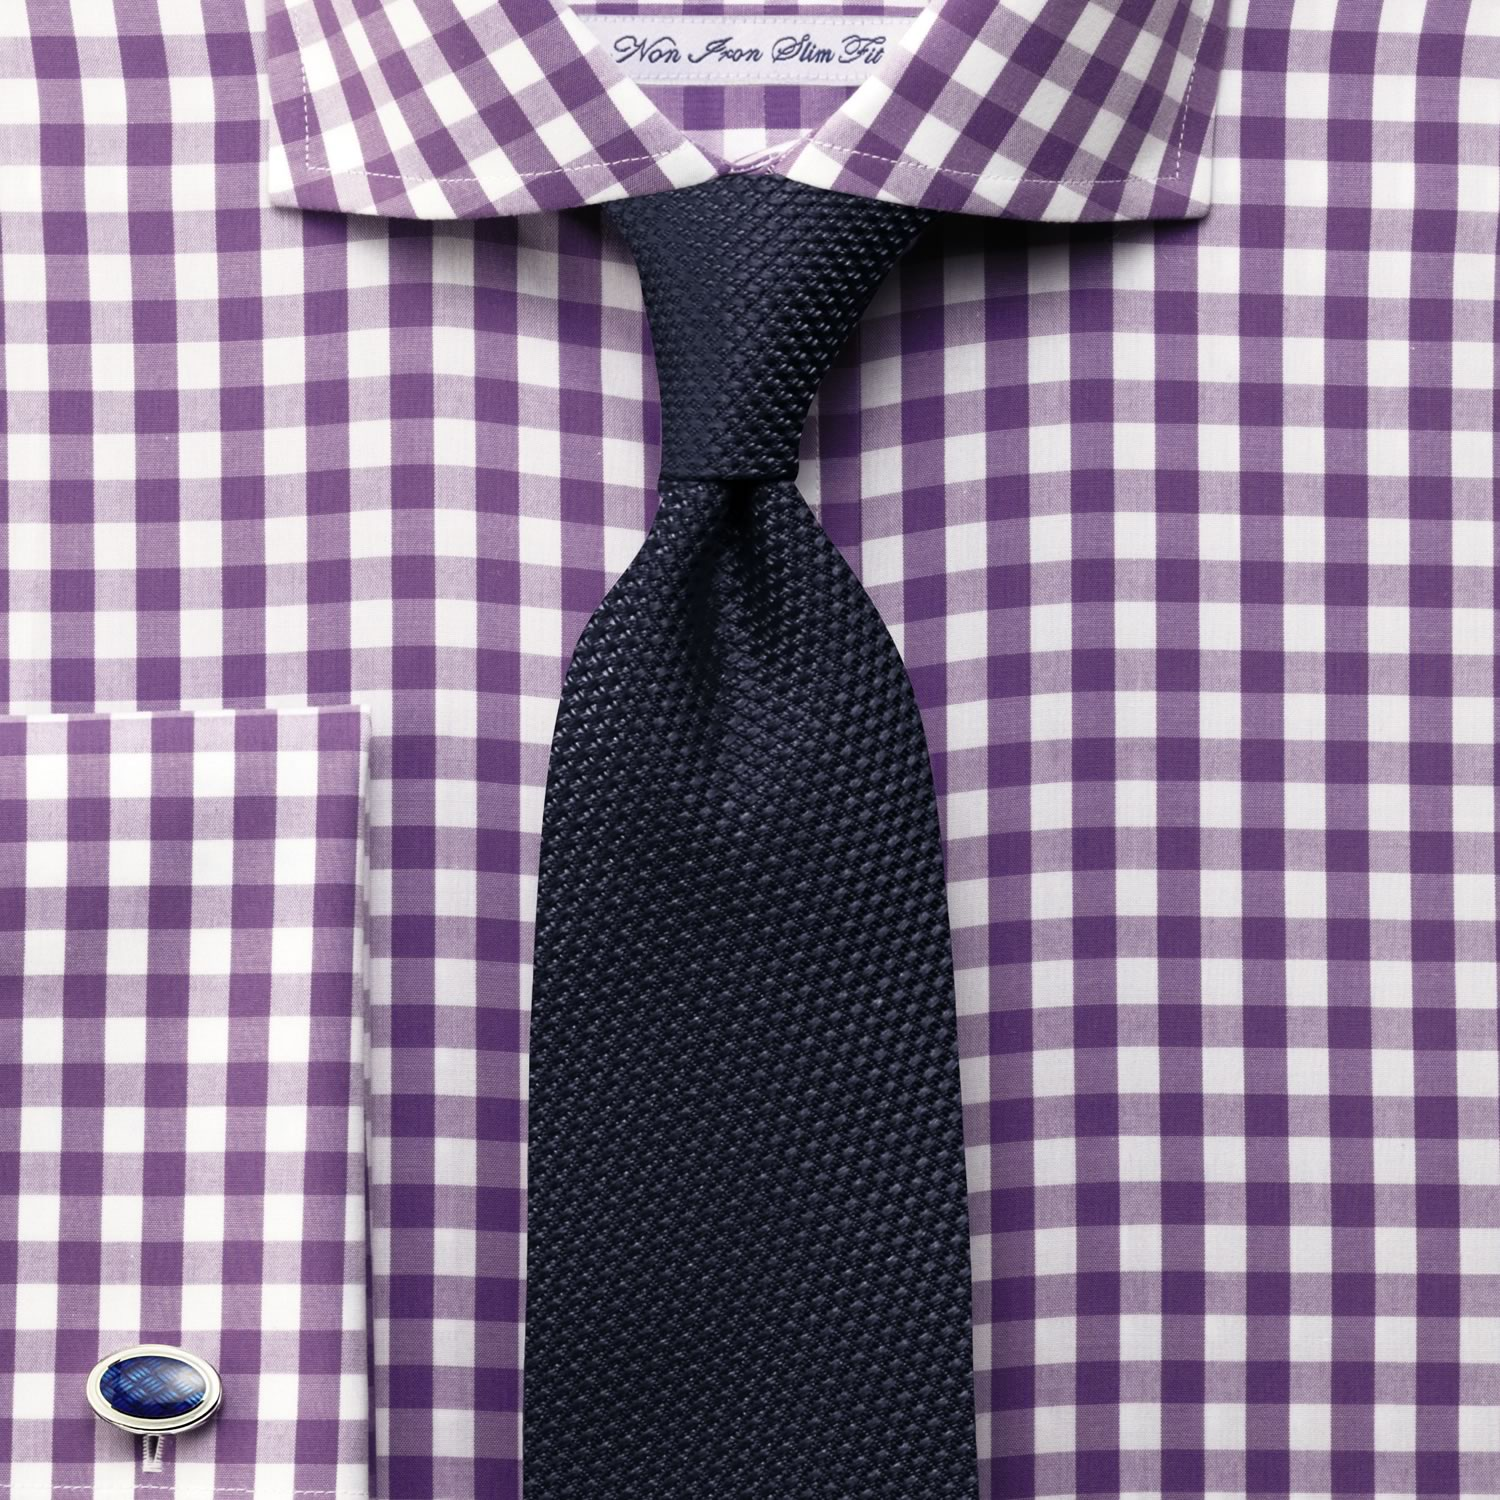 Gingham dievca for Ties that go with purple shirts